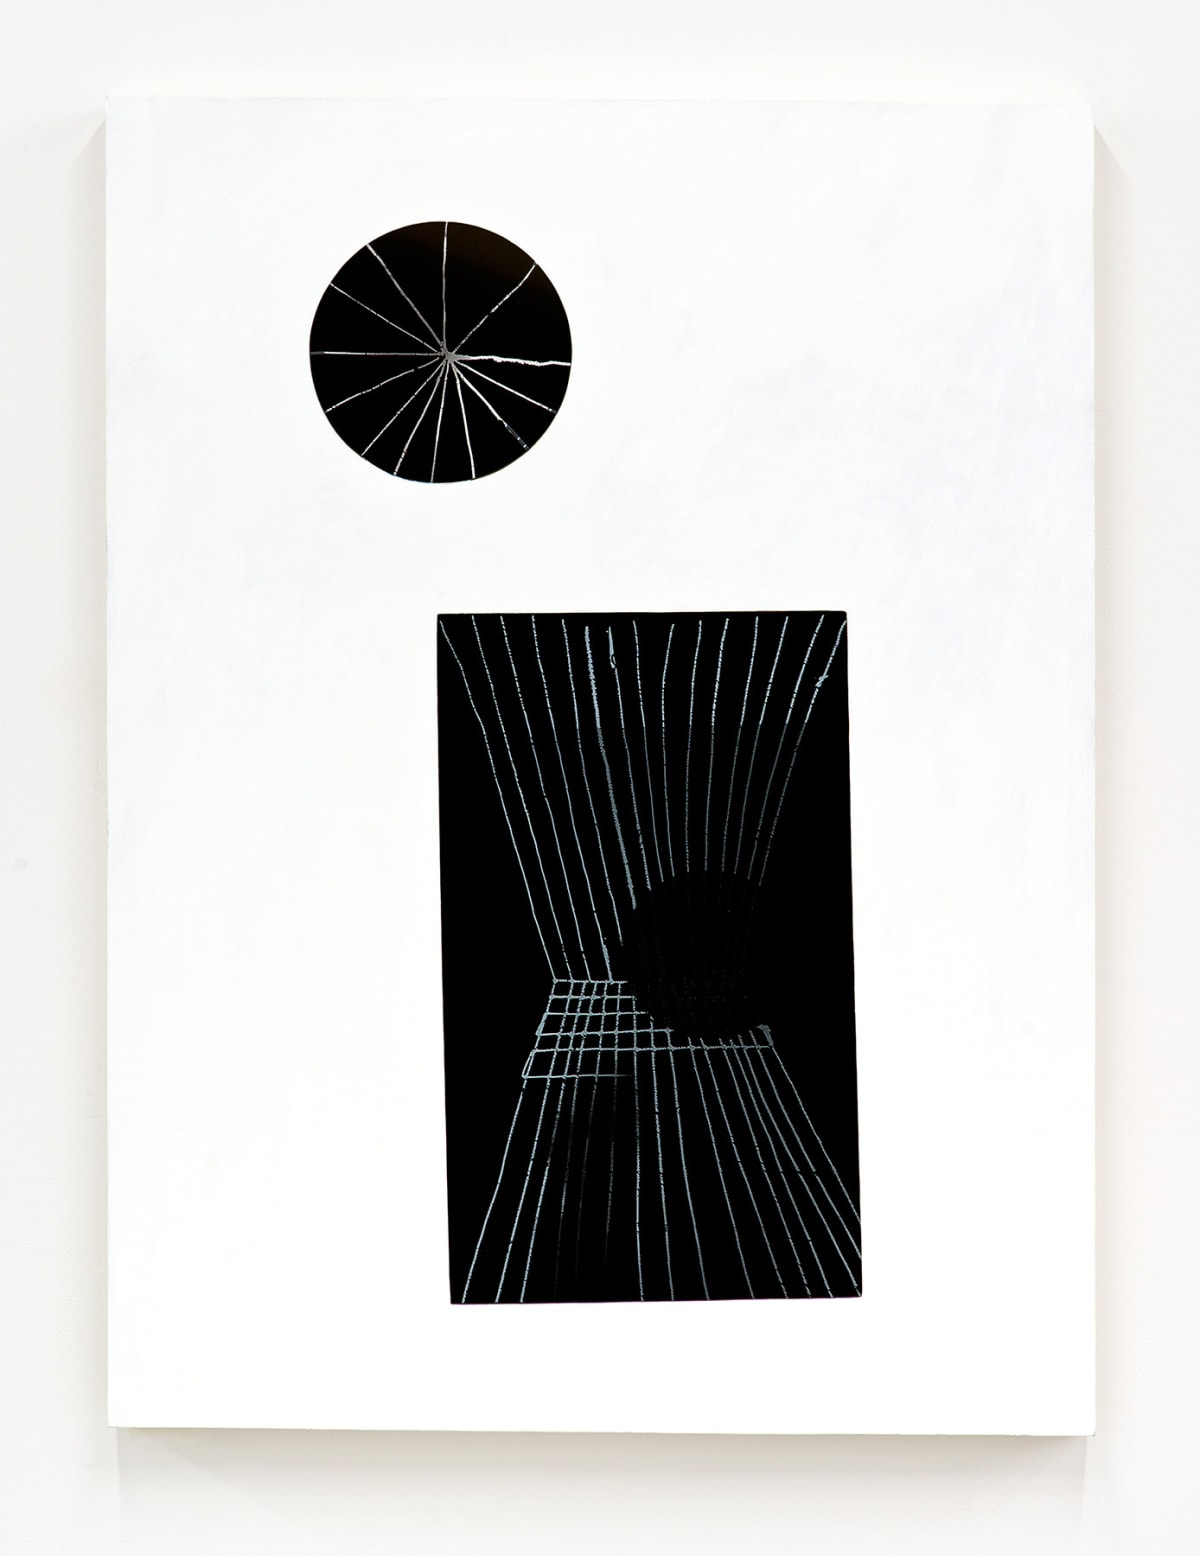 Brian Bress, Transits and Occultations, 2014